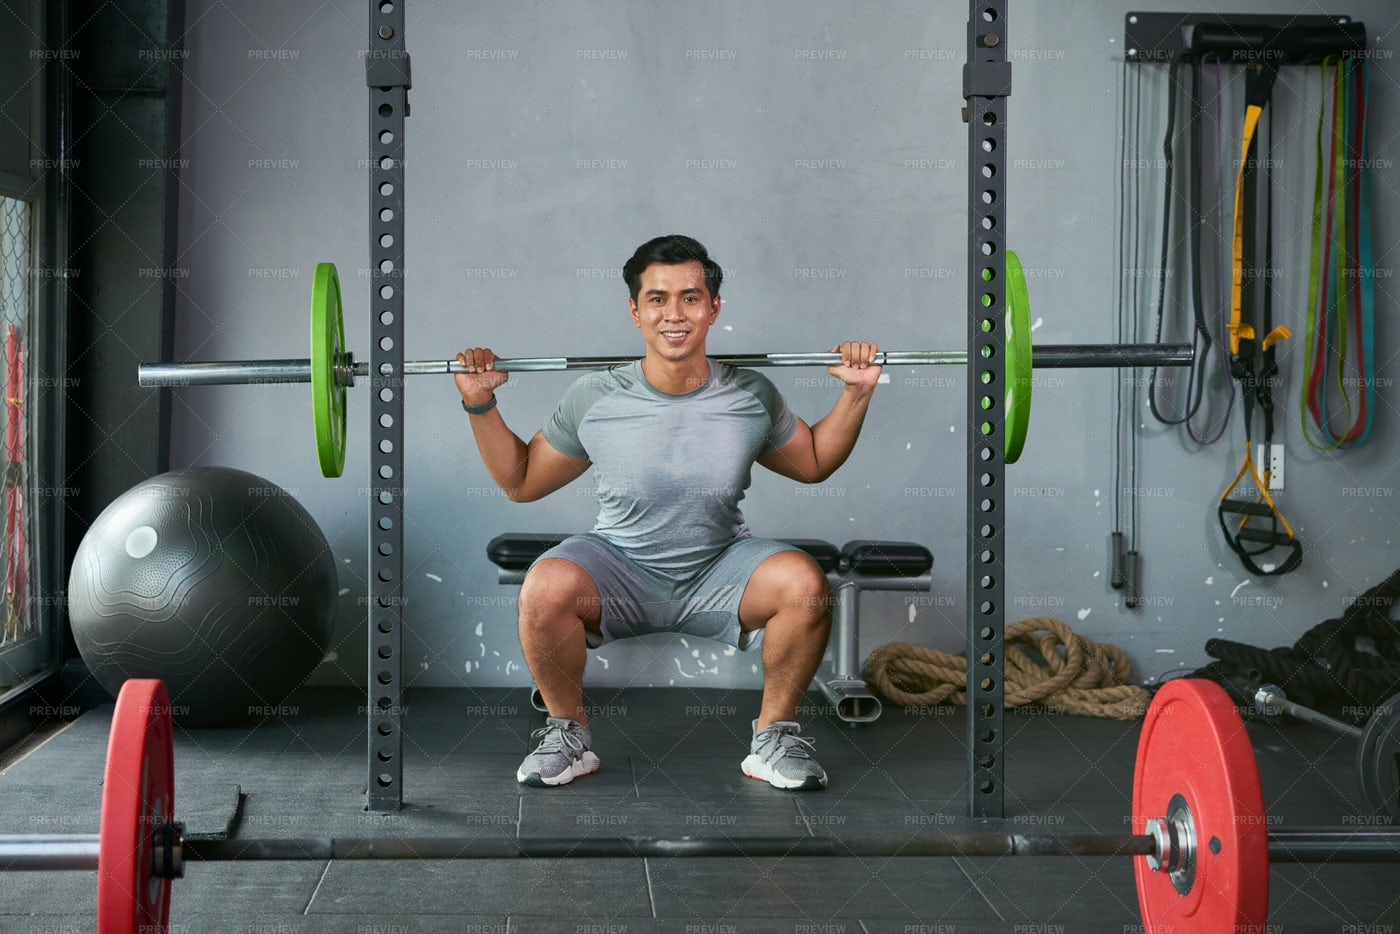 Man Lifting Dumbbell In Gym: Stock Photos